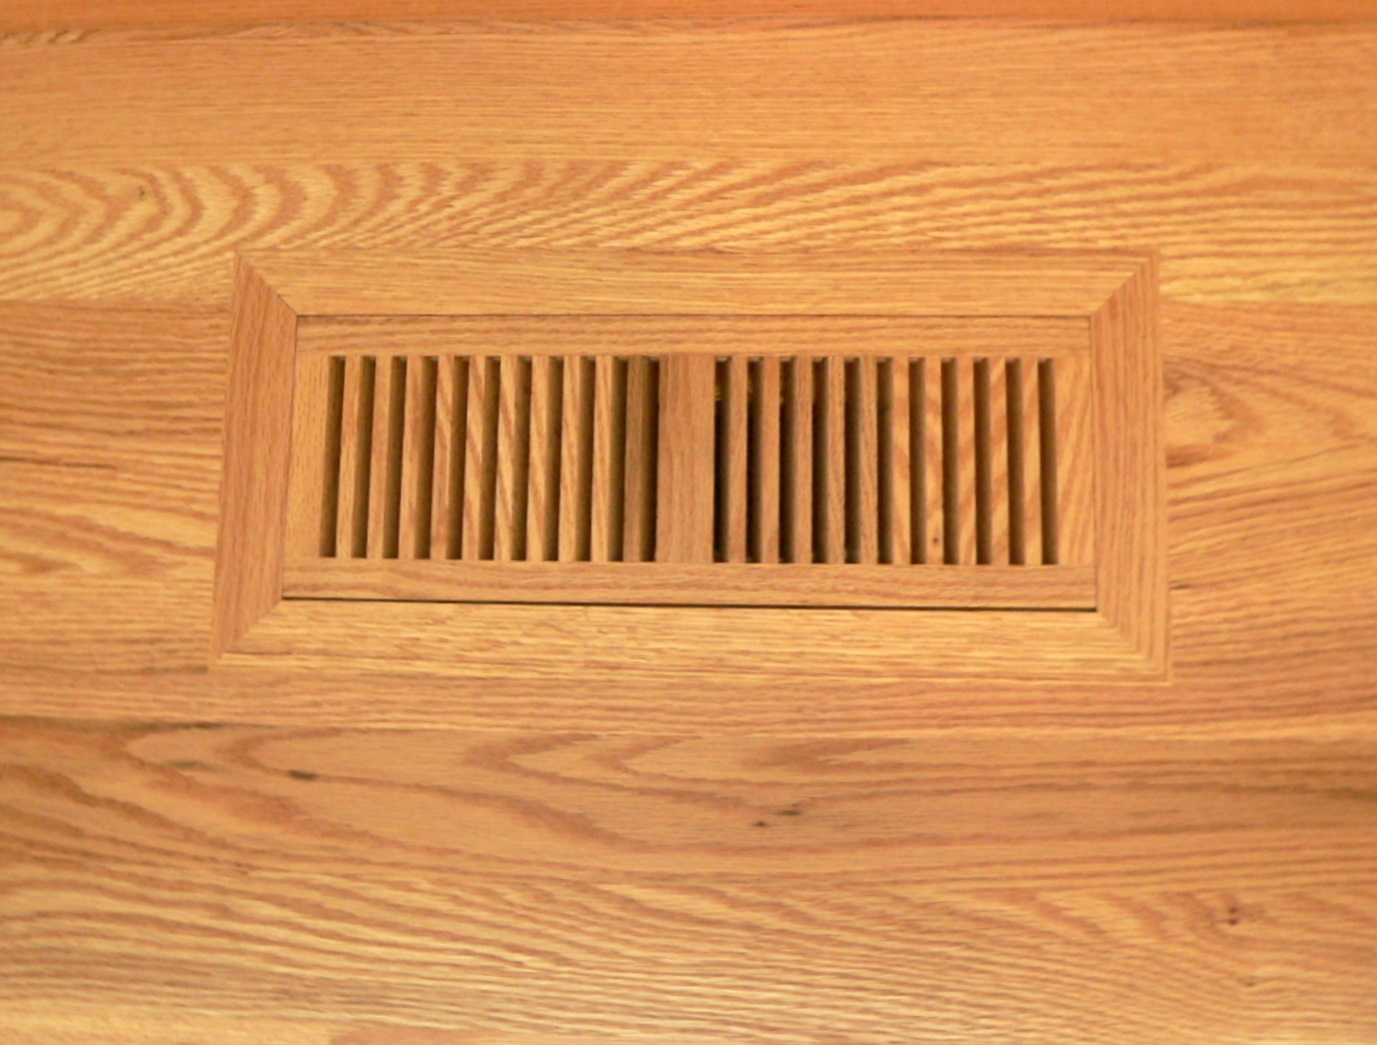 New Venice Wooden 4 Quot X12 Quot Red Oak Wood Vent Floor Register